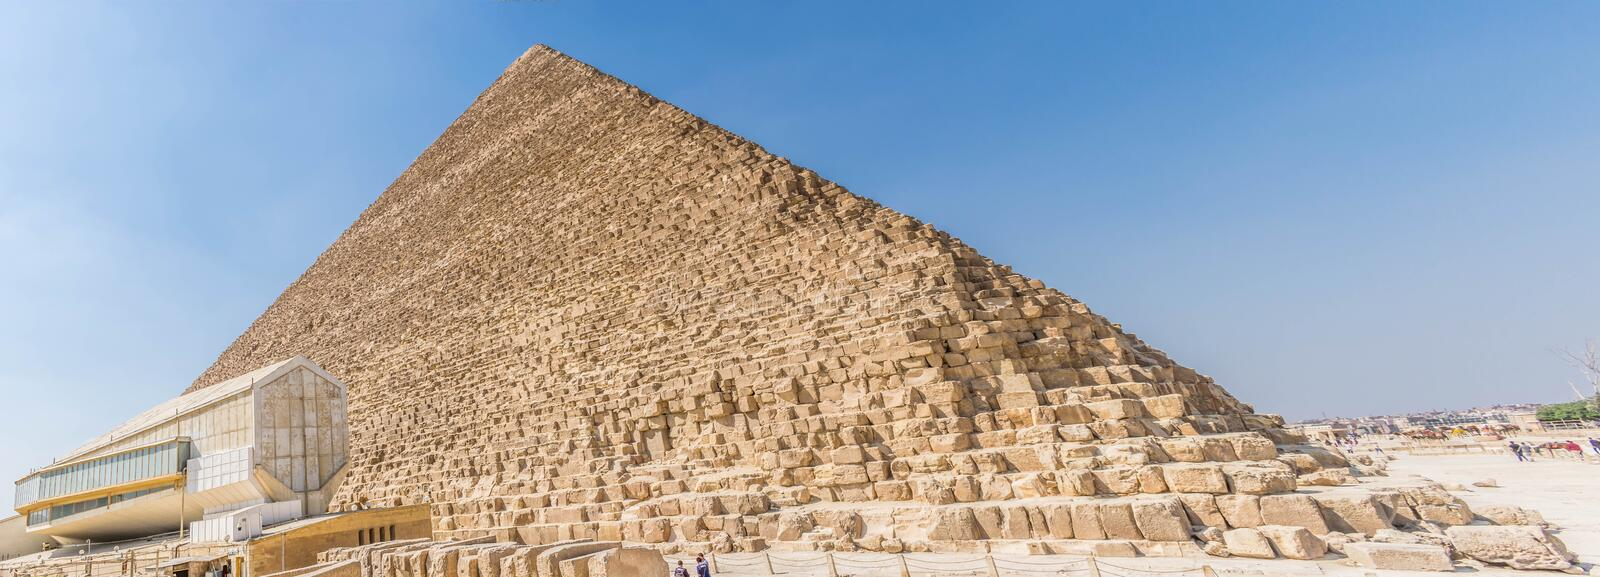 The Pyramid of Cheops in Sahara Desert. The Great Pyramid of Giza also the Pyramid of Khufu or the Pyramid of Cheops. is the oldest and largest of the three stock photo